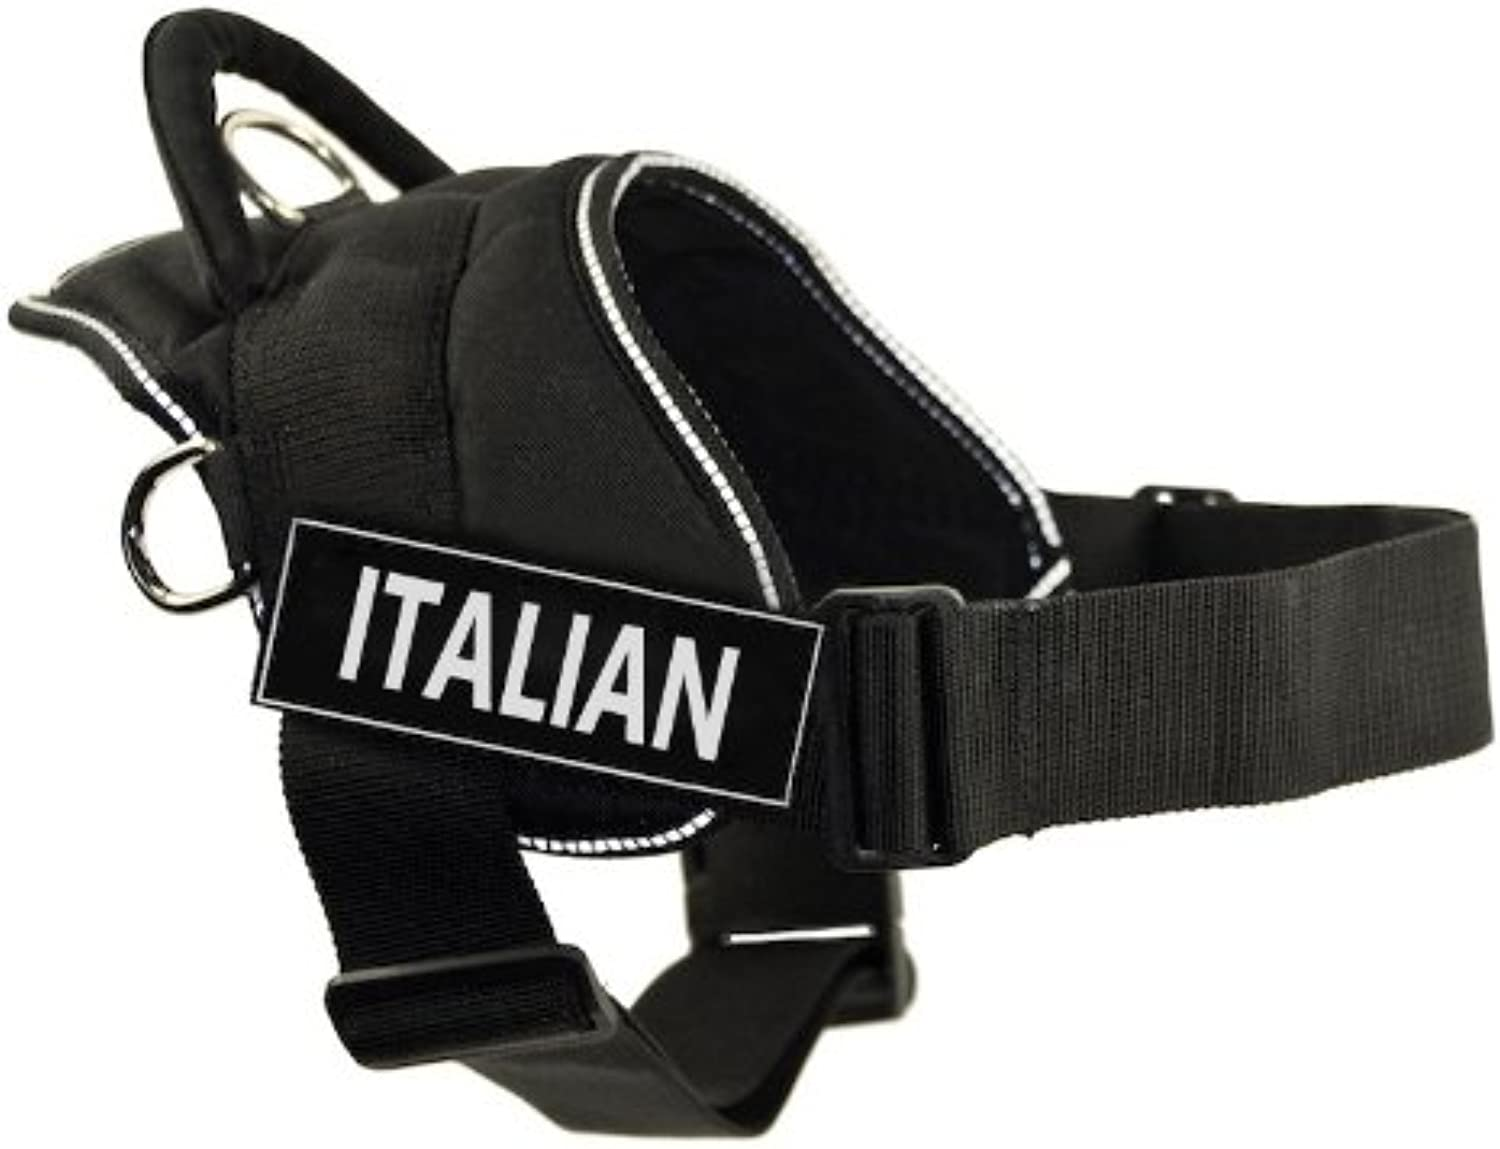 Dean & Tyler DT Fun Harness, Italian, Black With Reflective Trim, XSmall  Fits Girth Size  20Inch to 23Inch